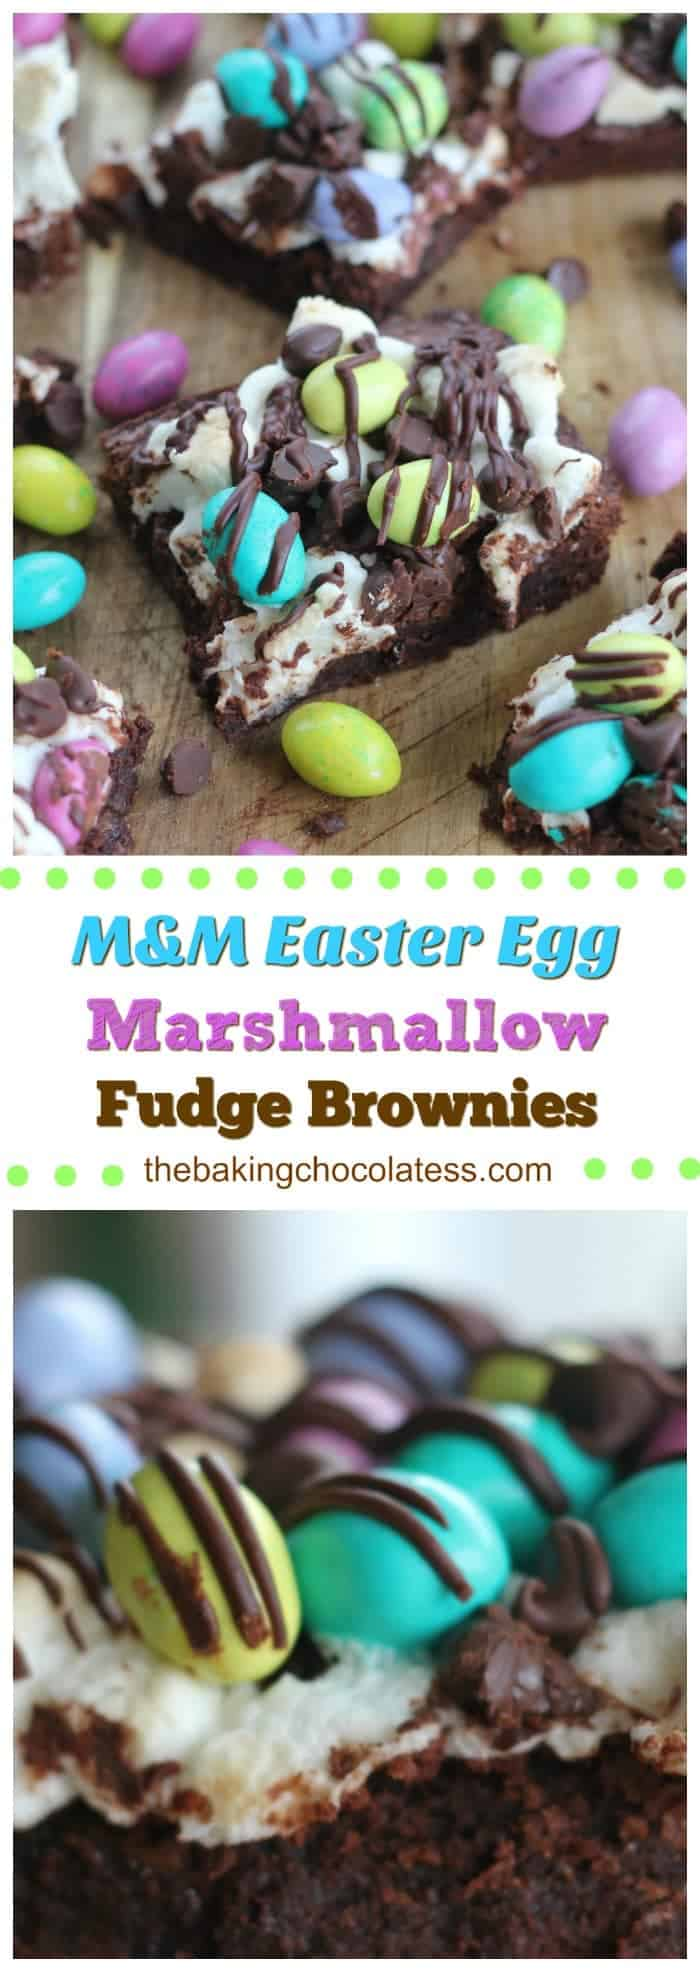 M&M Easter Egg Marshmallow Fudge Brownies - \